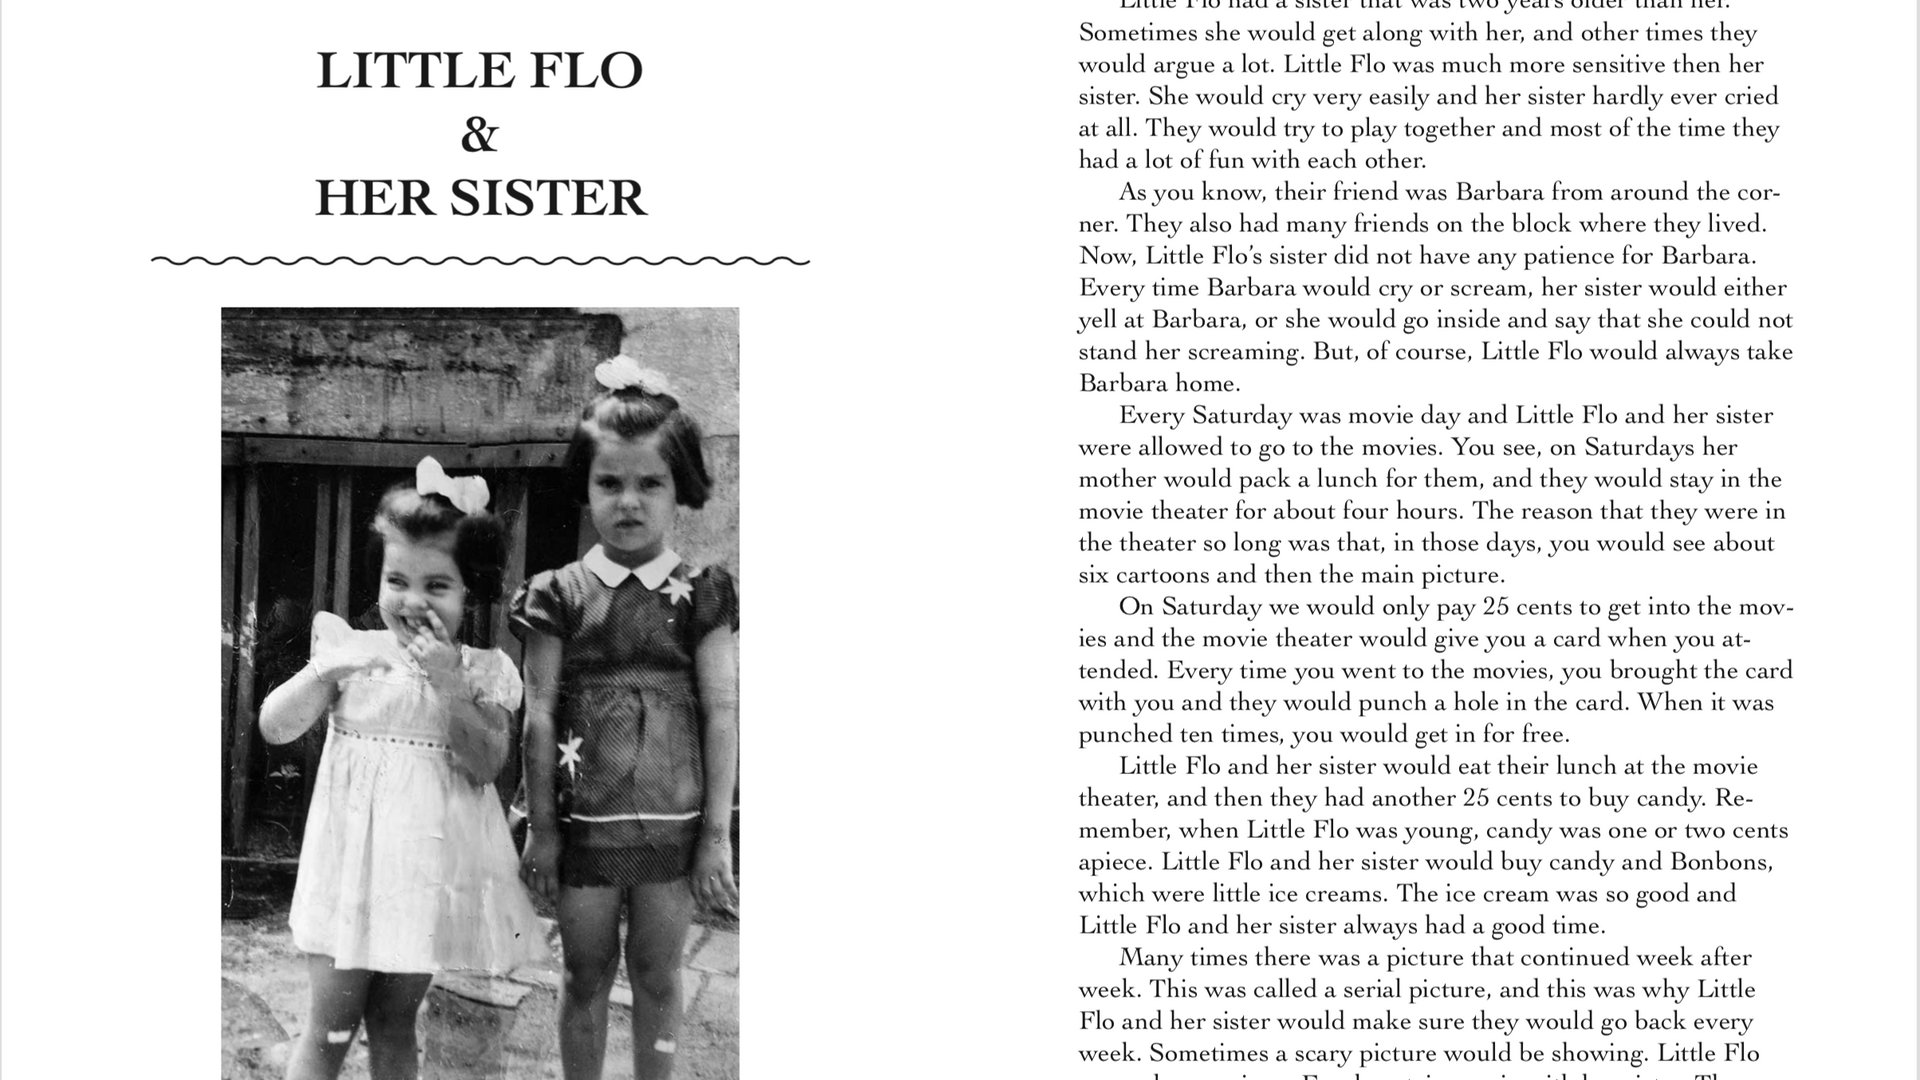 The Adventures of Little Flo